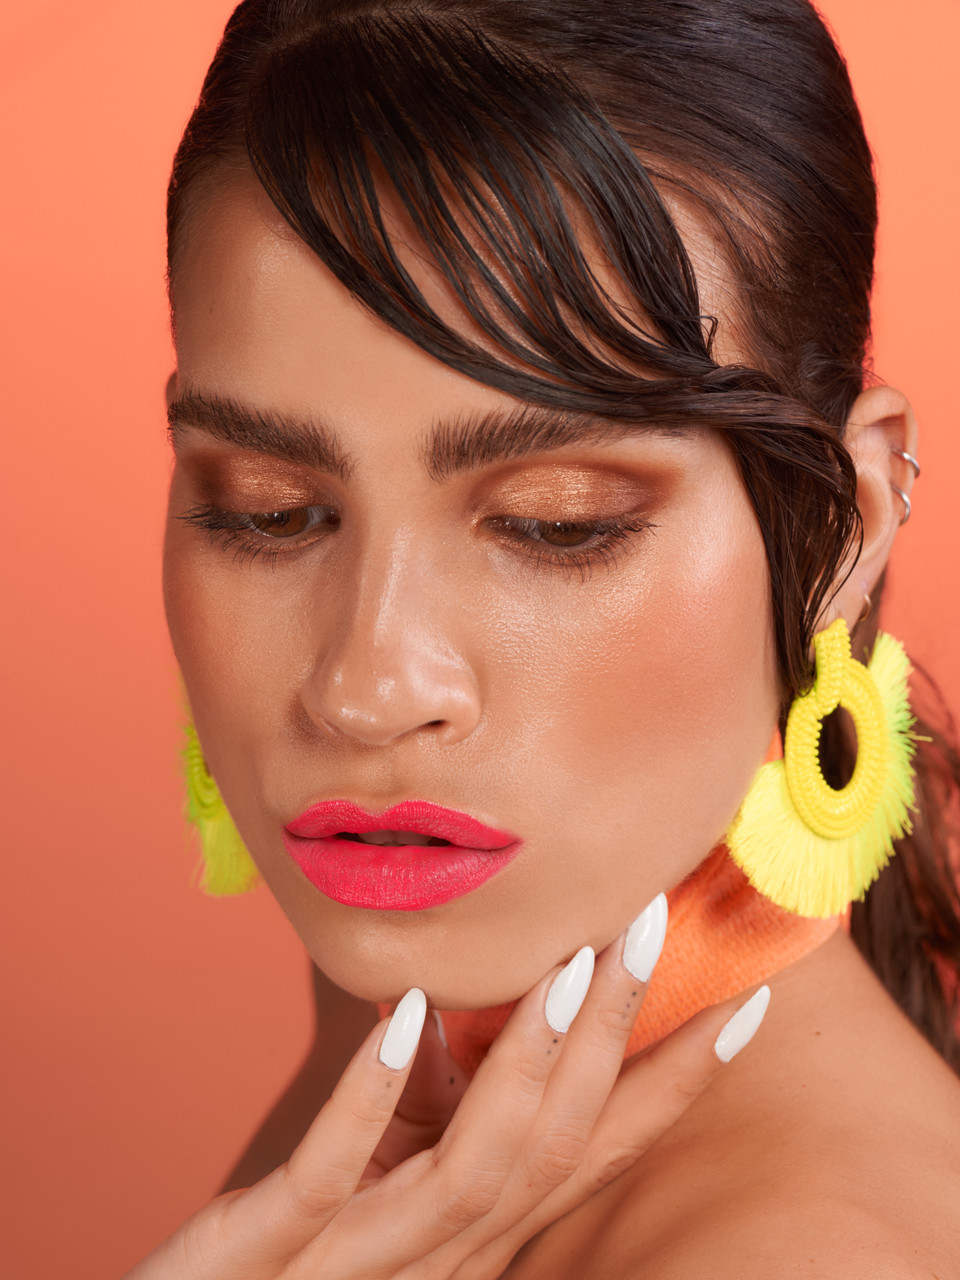 caitlin wyman editorial beauty neon lips